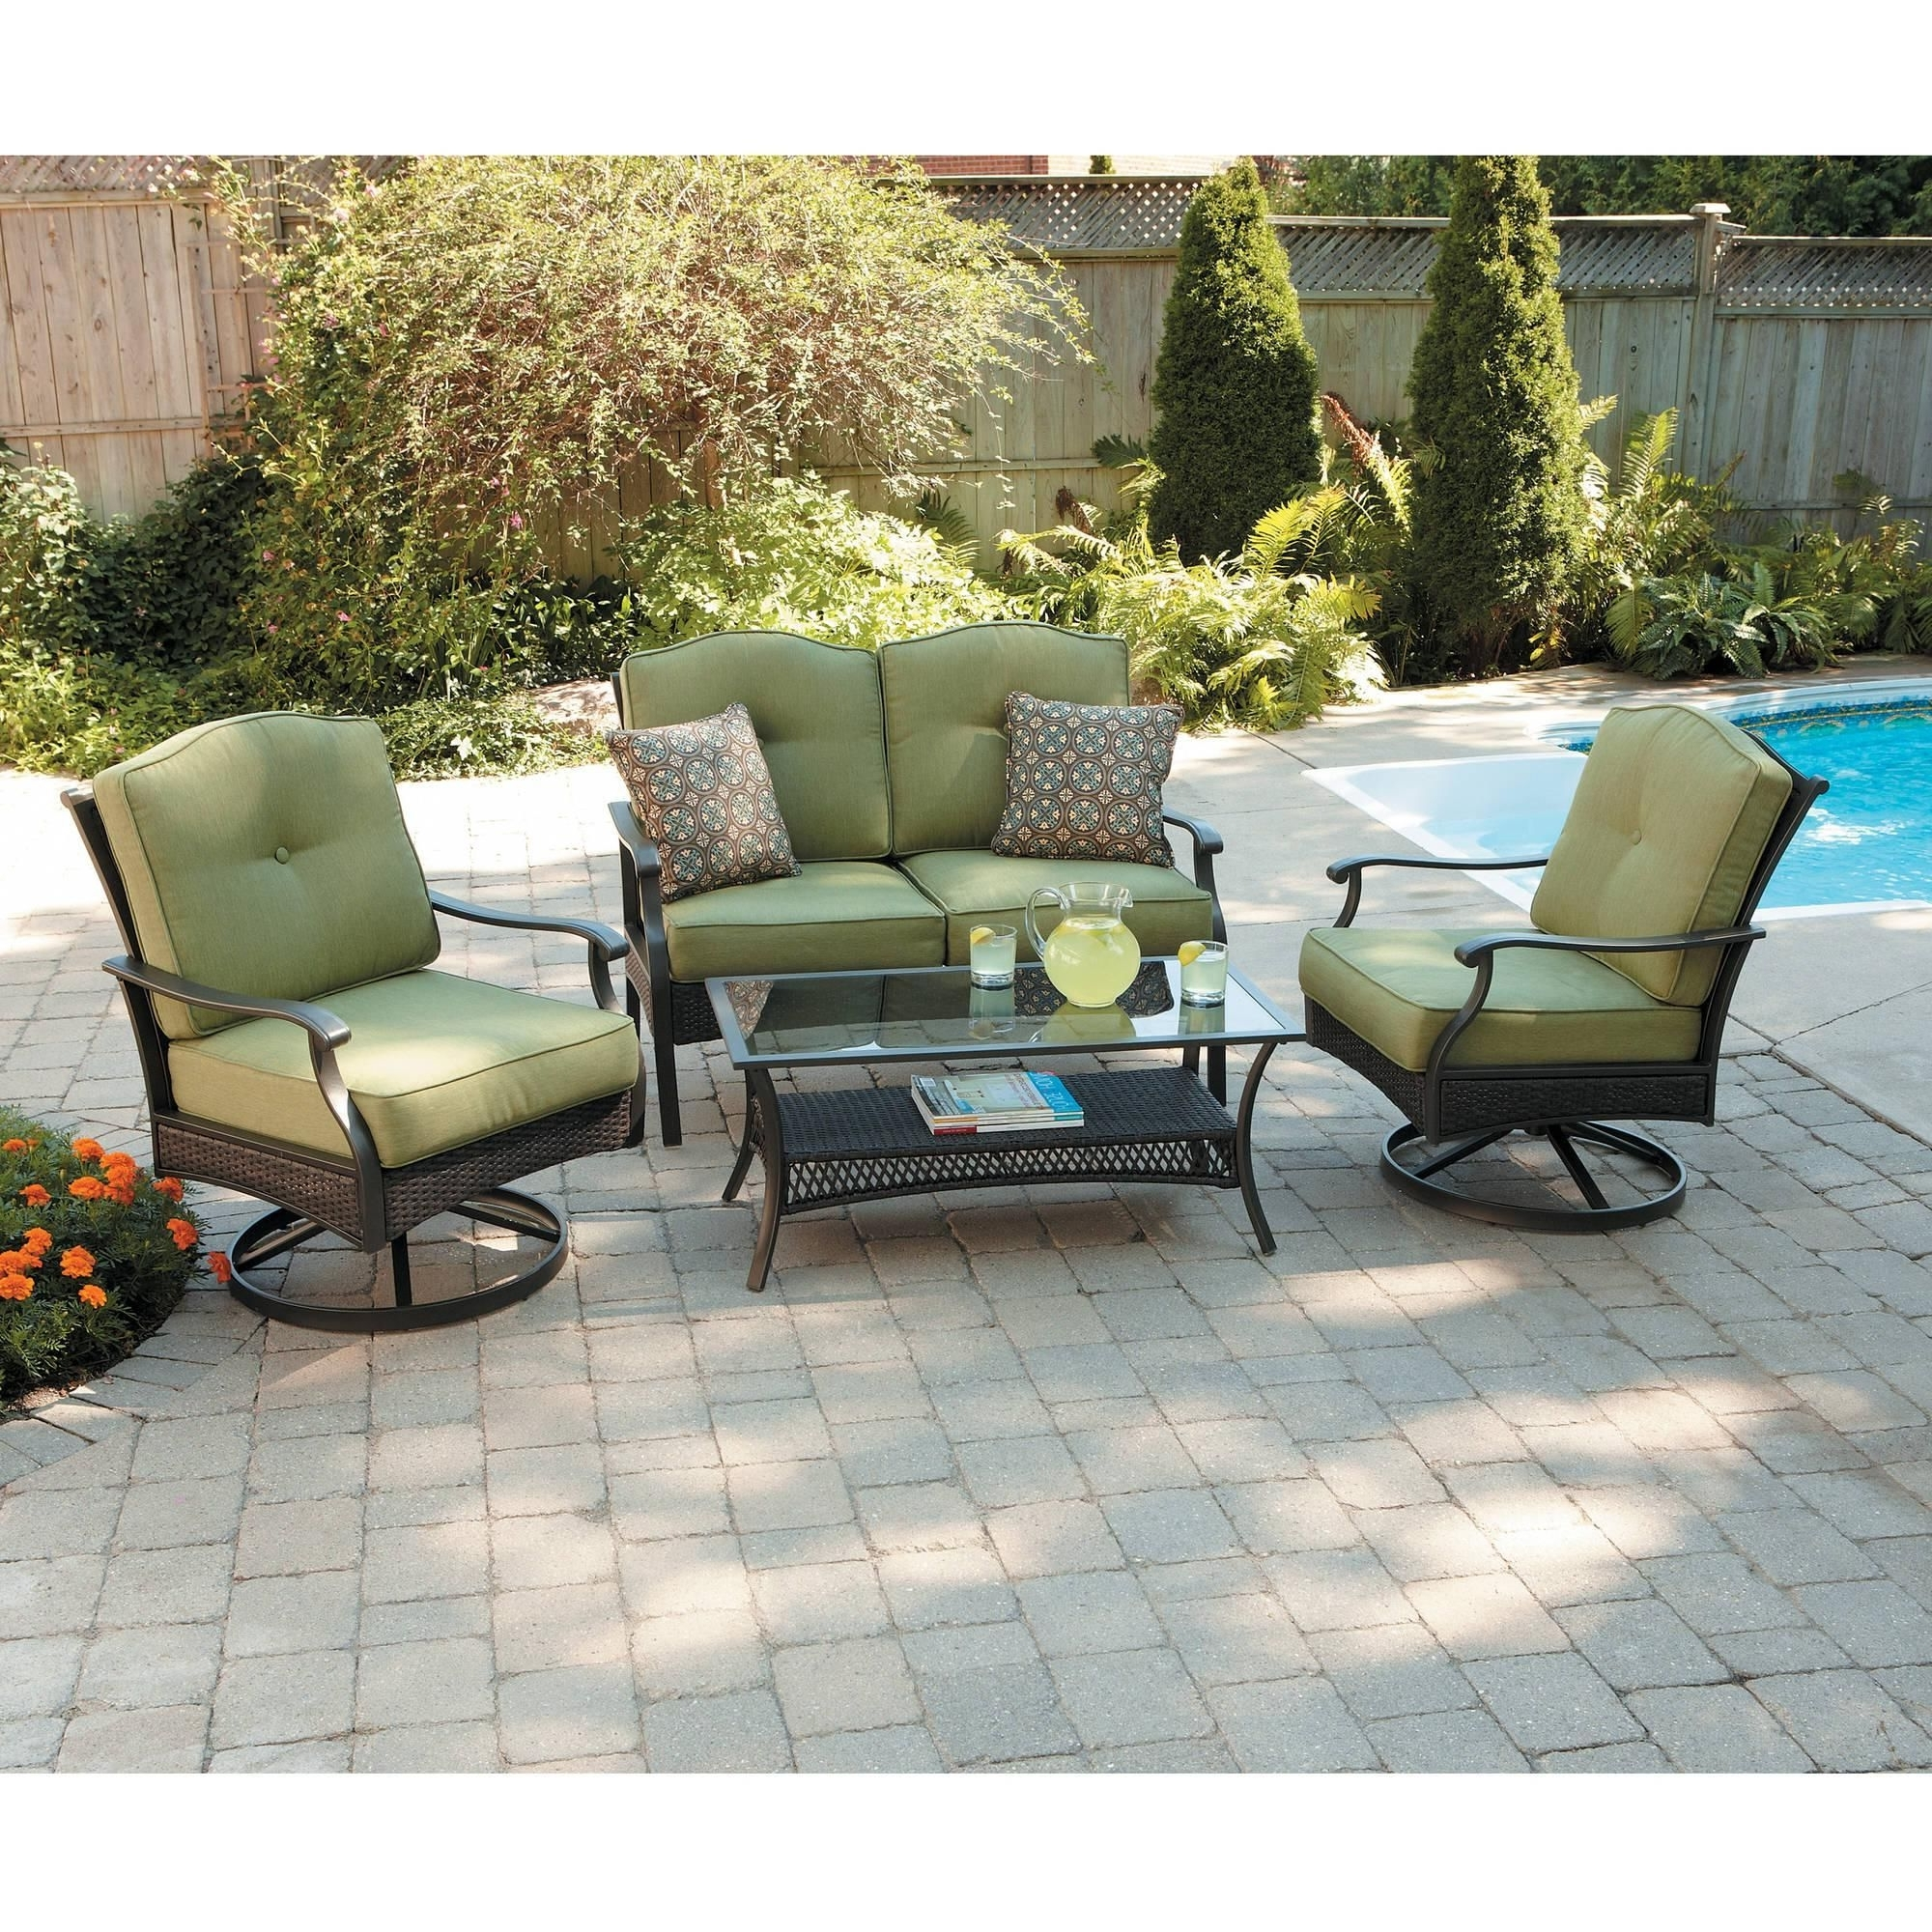 Better Homes And Gardens Providence 4 Piece Patio Conversation Set Pertaining To Latest 4 Piece Patio Conversation Sets (View 9 of 20)